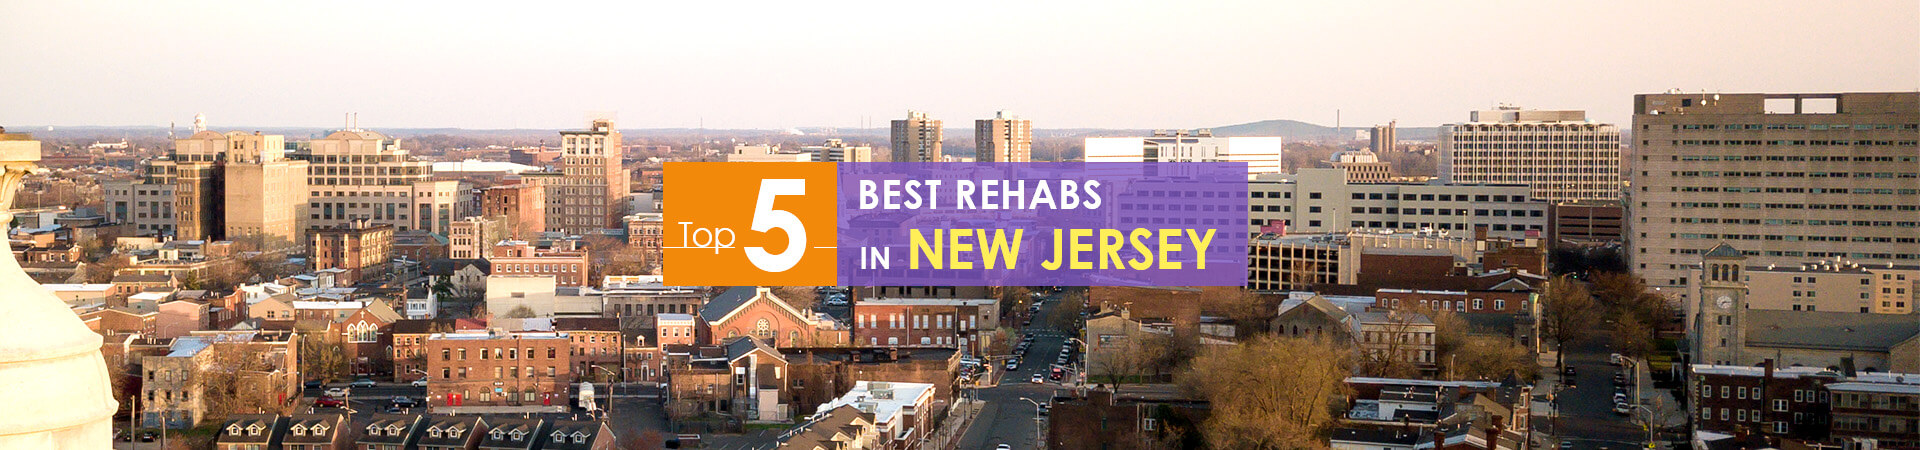 Trenton New Jersey view and top 5 rehabs caption